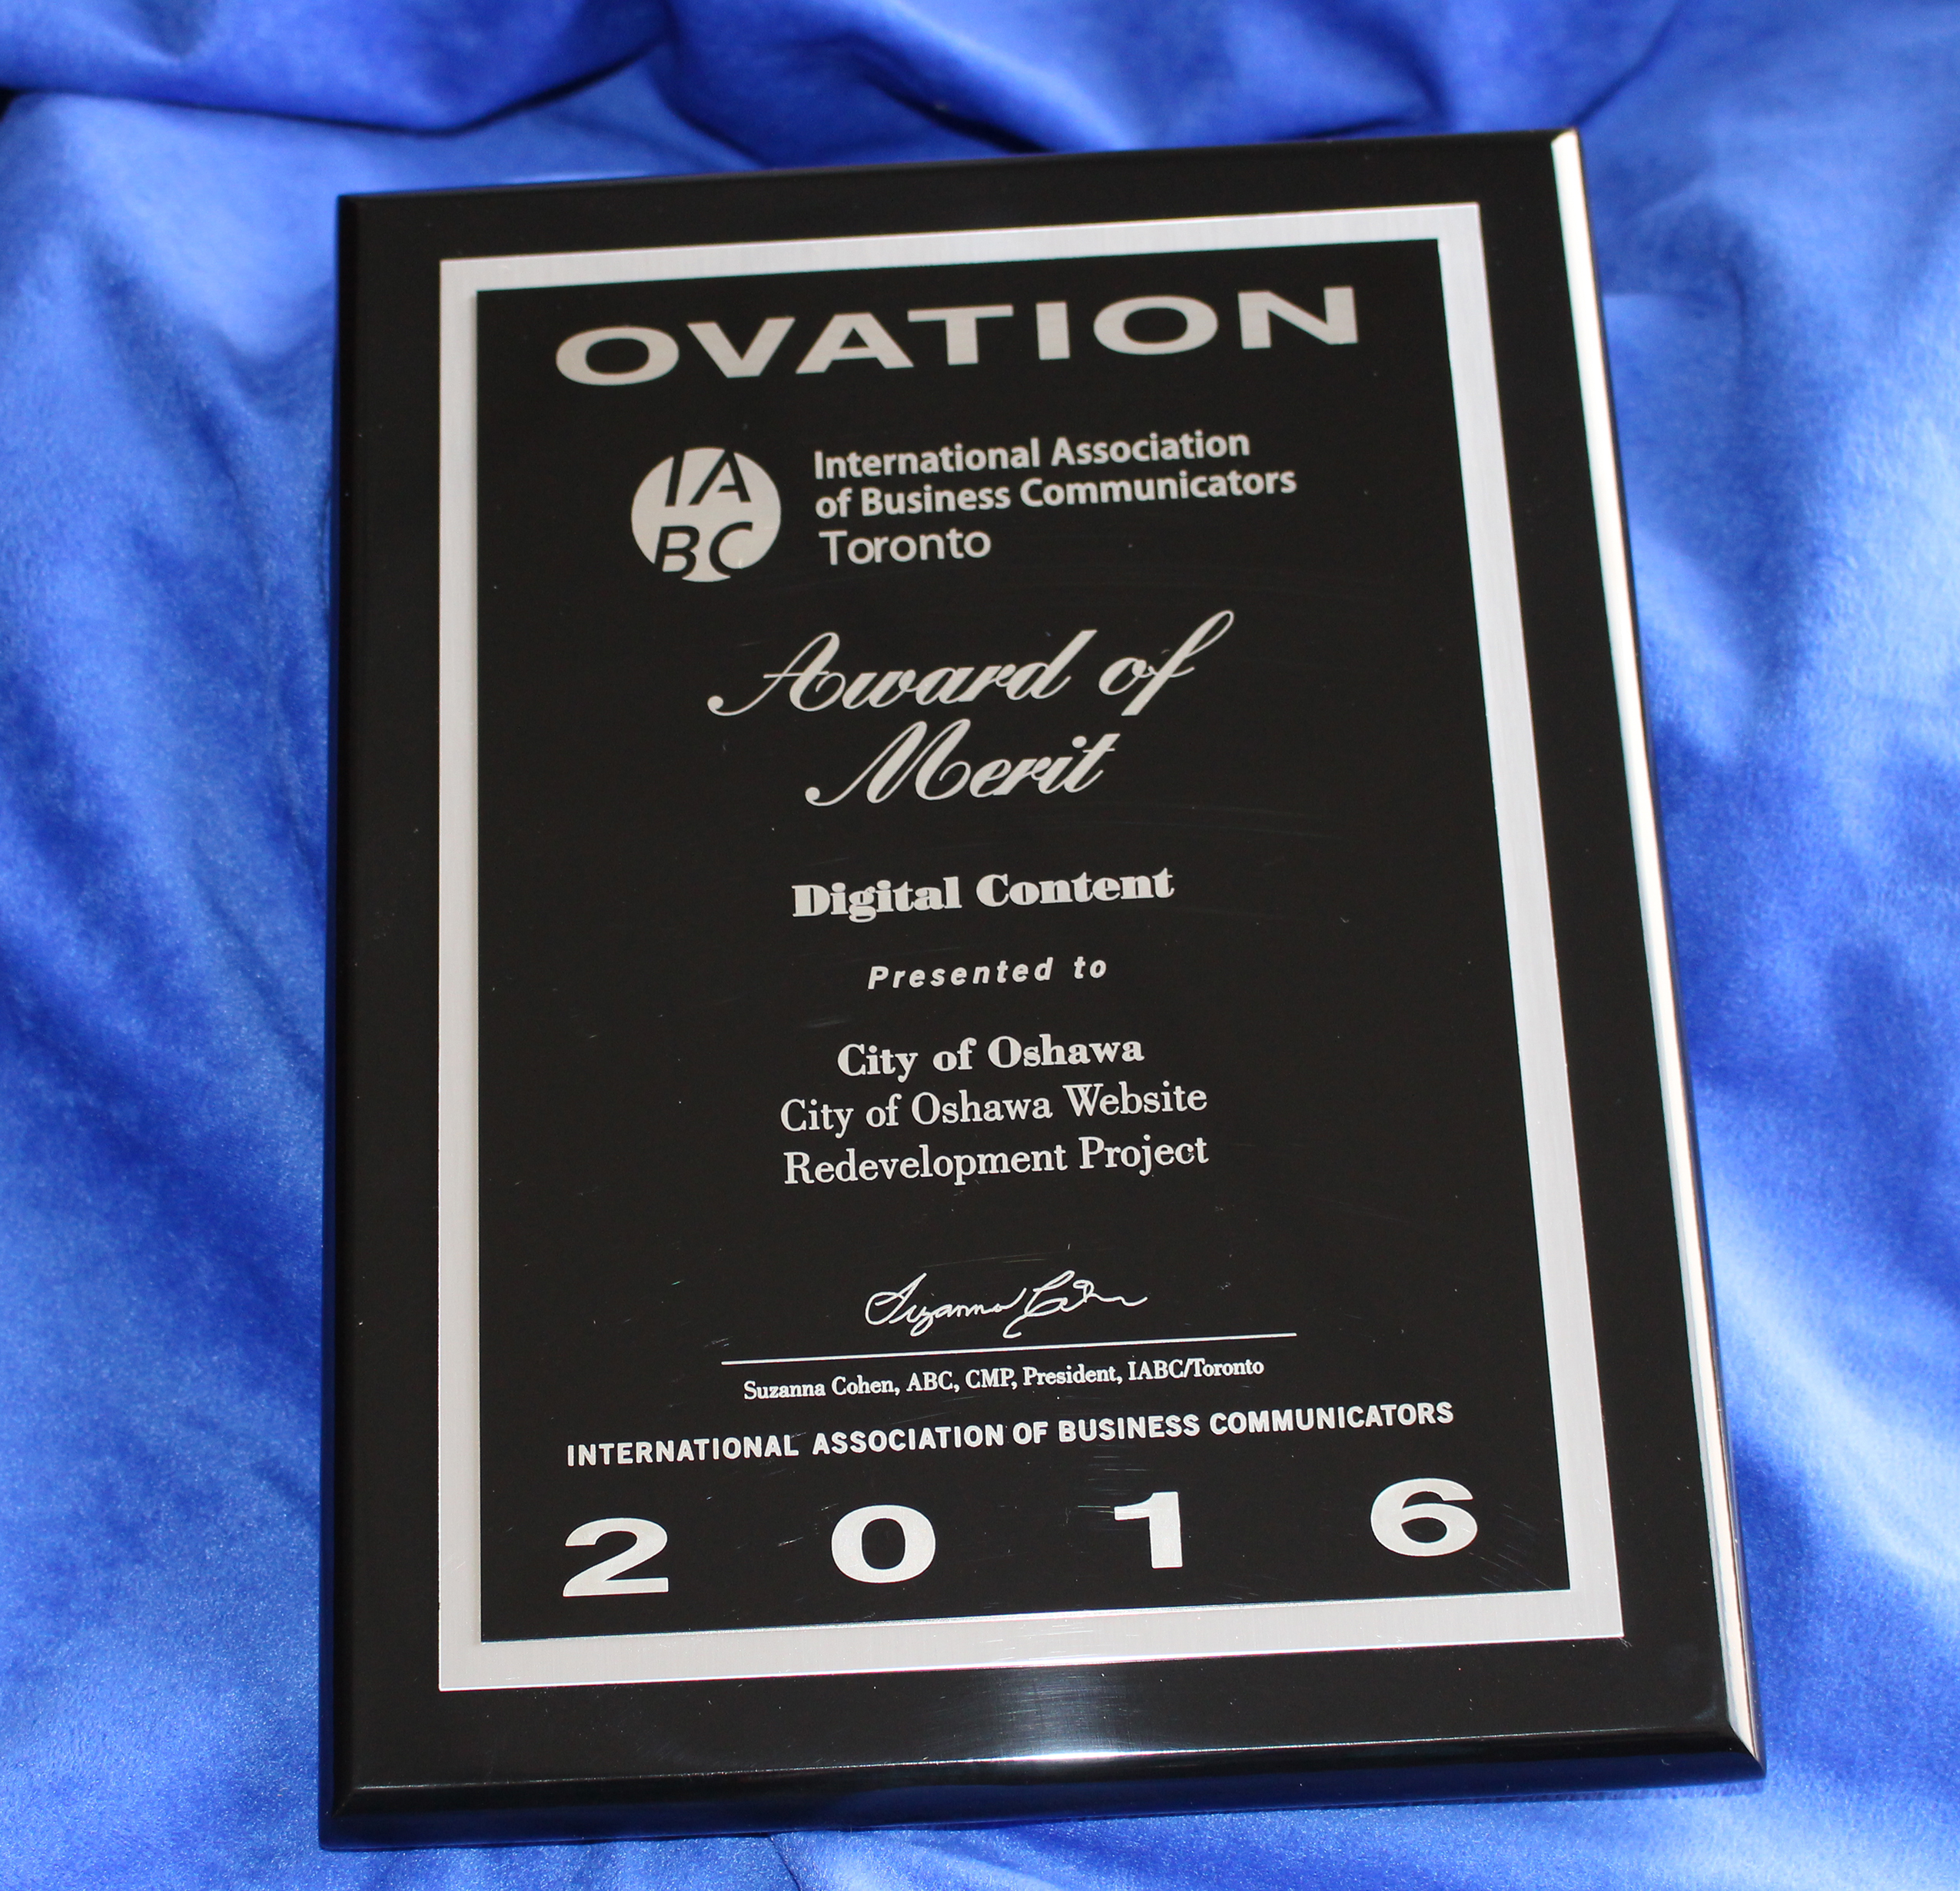 OVATION Award of Merit